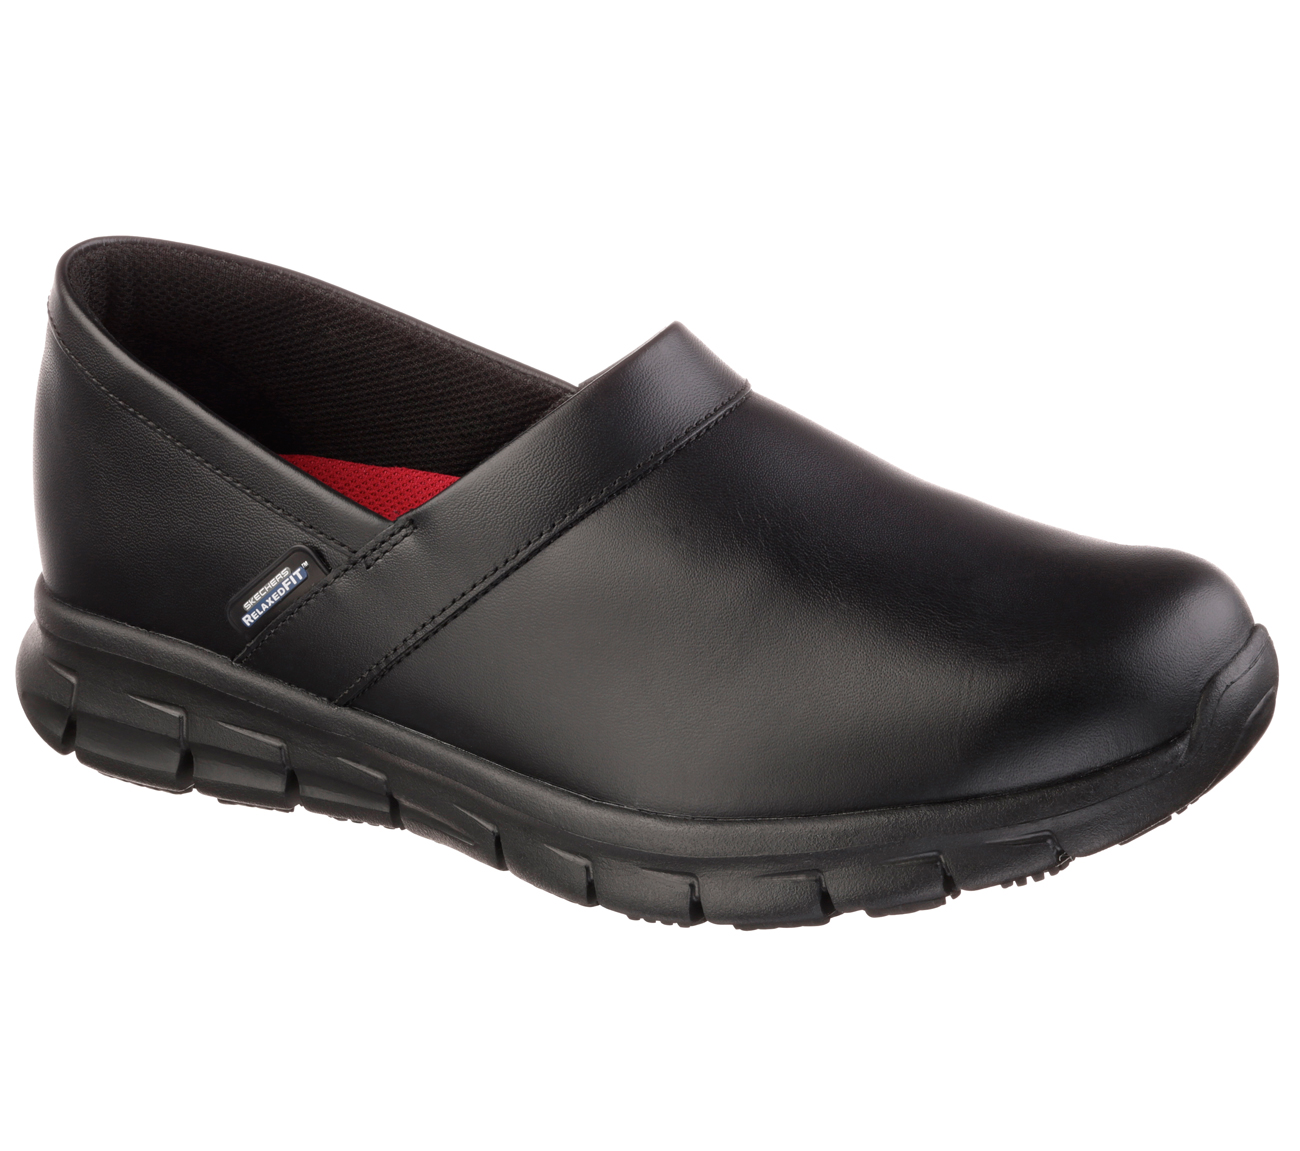 Working Shoes For Men   Shoes For Crews   Shop Comfortable Working